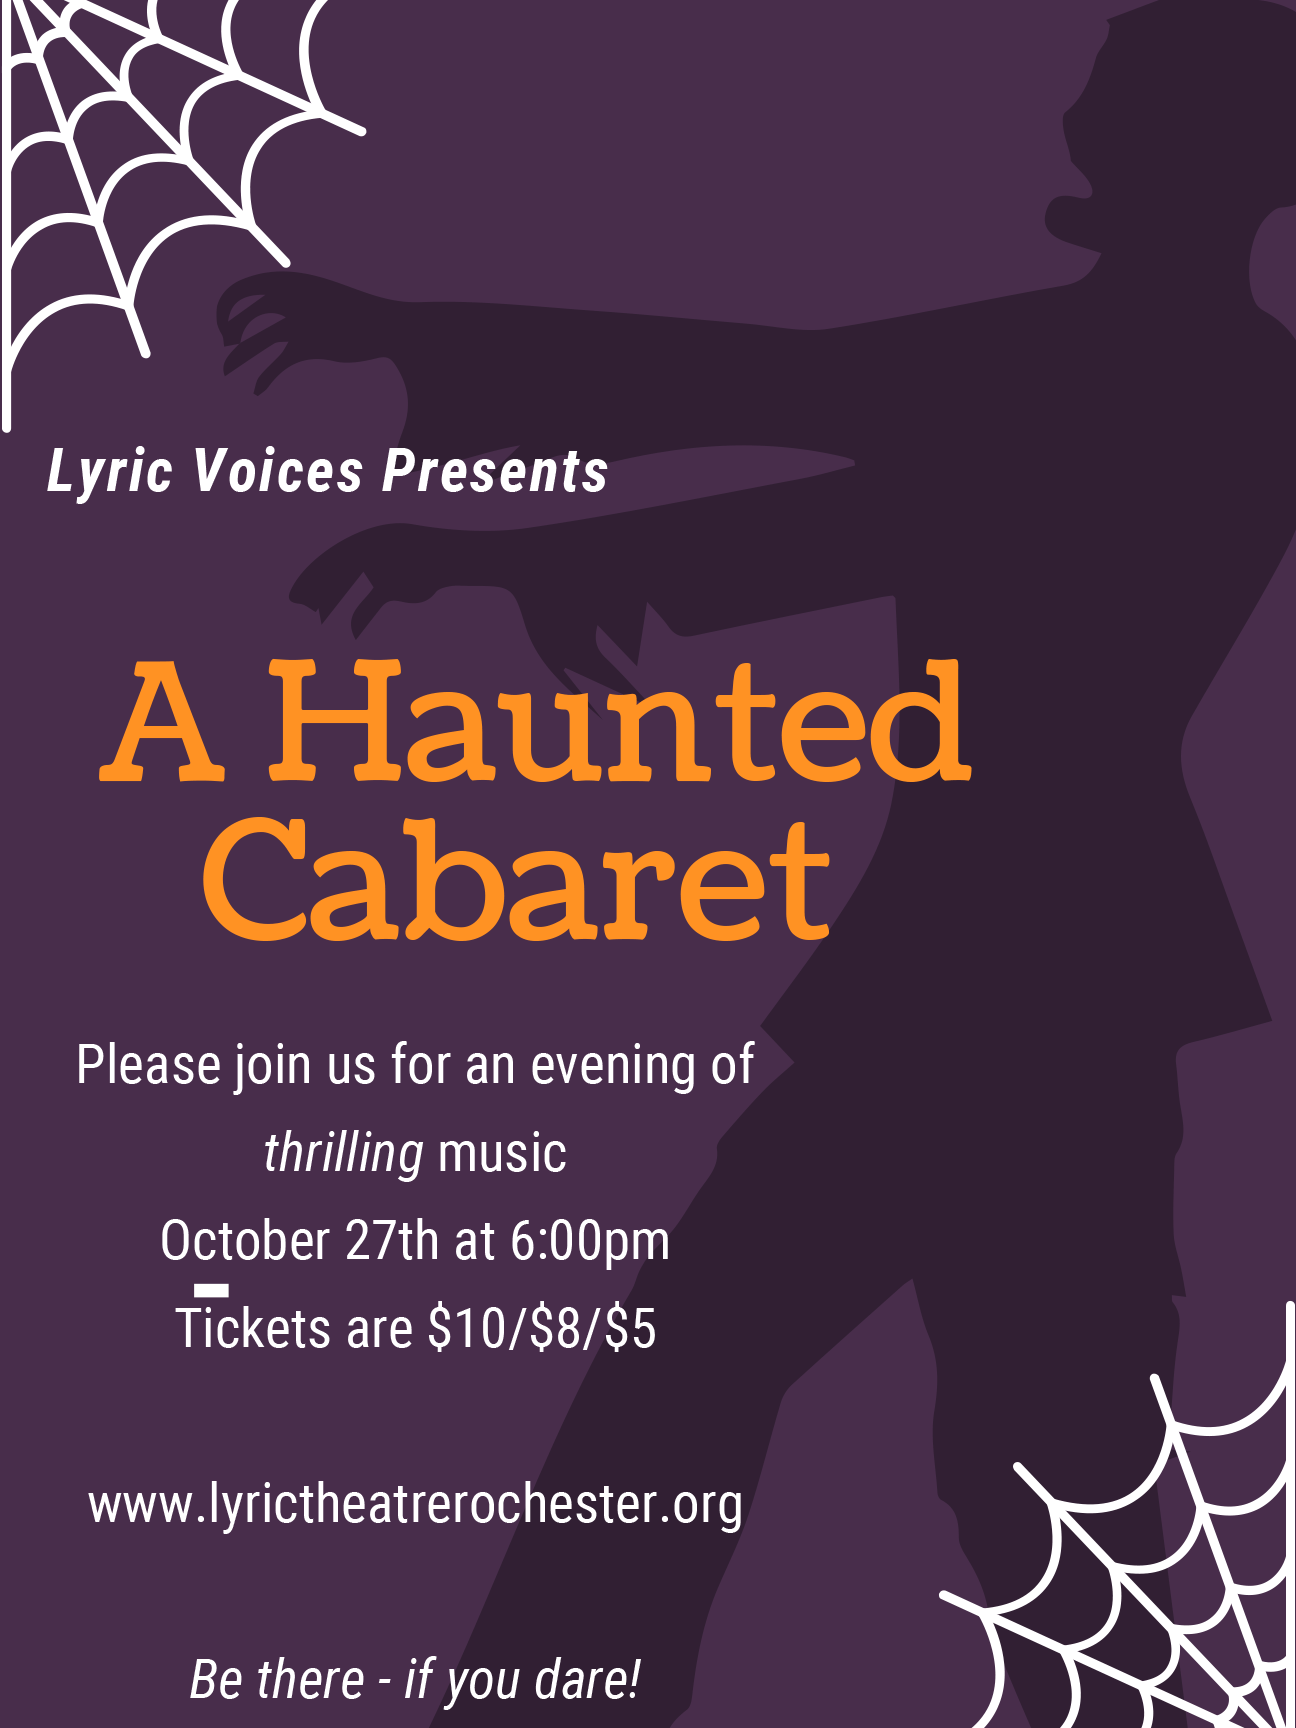 Lyric Voices Haunted Cabaret-tall.png